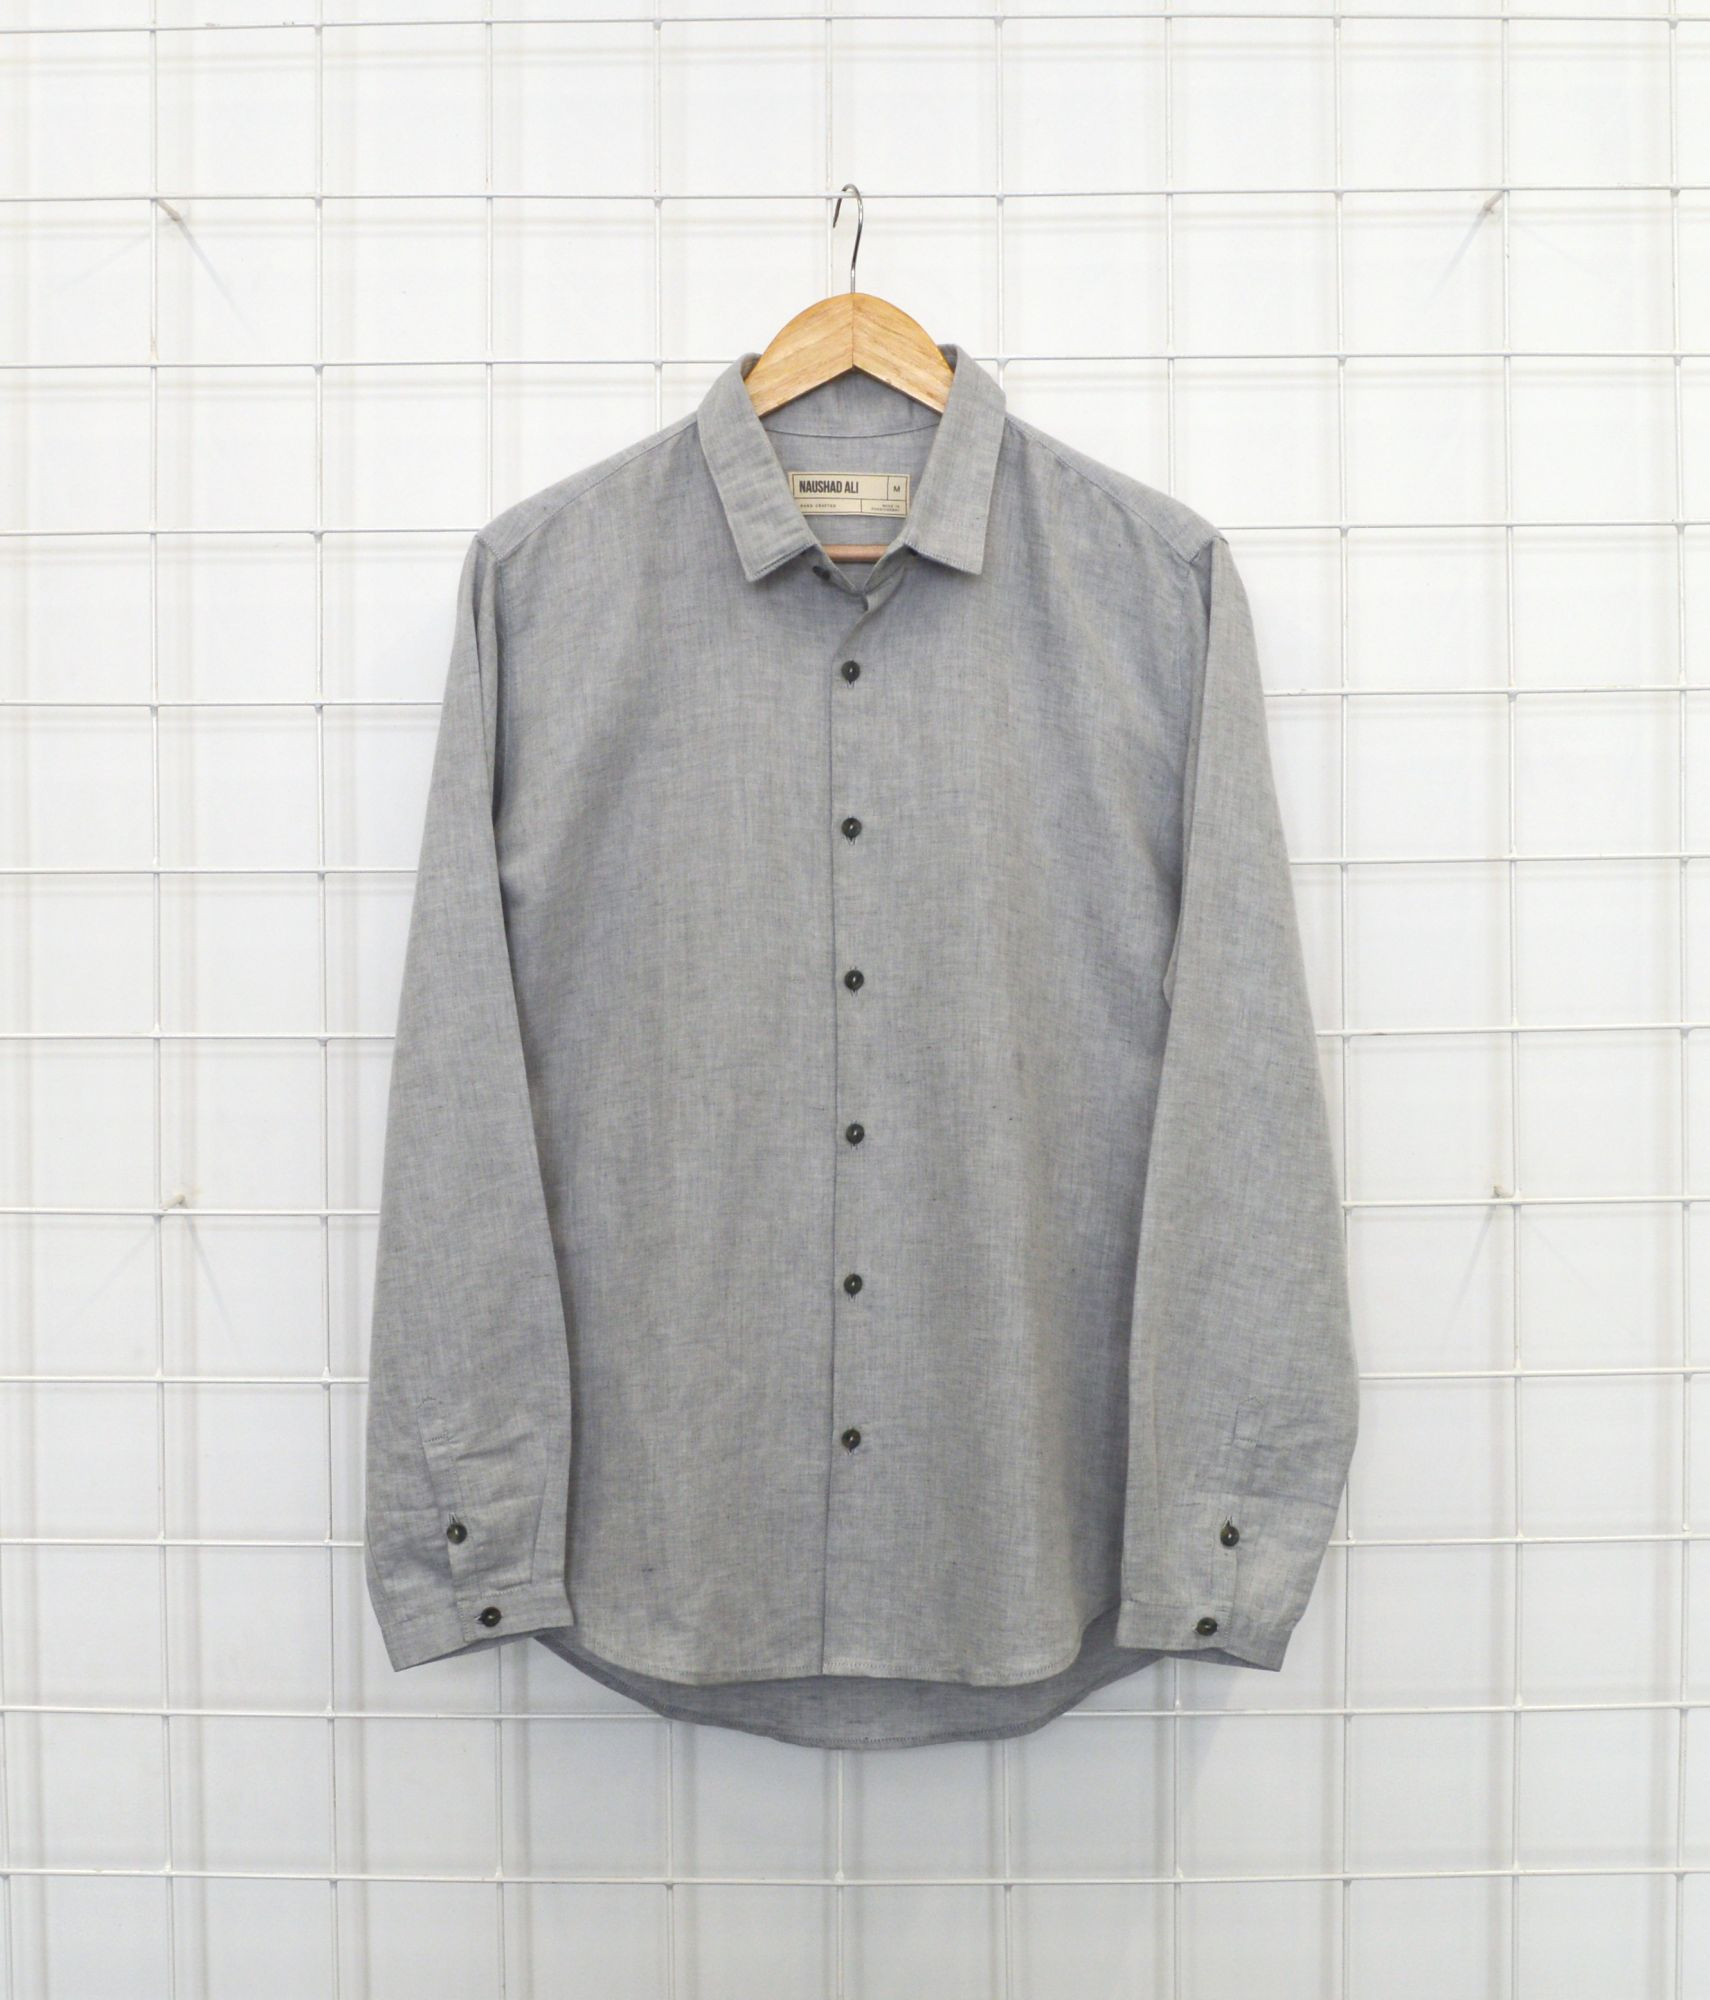 Good fella Shirt - Linen - Cement